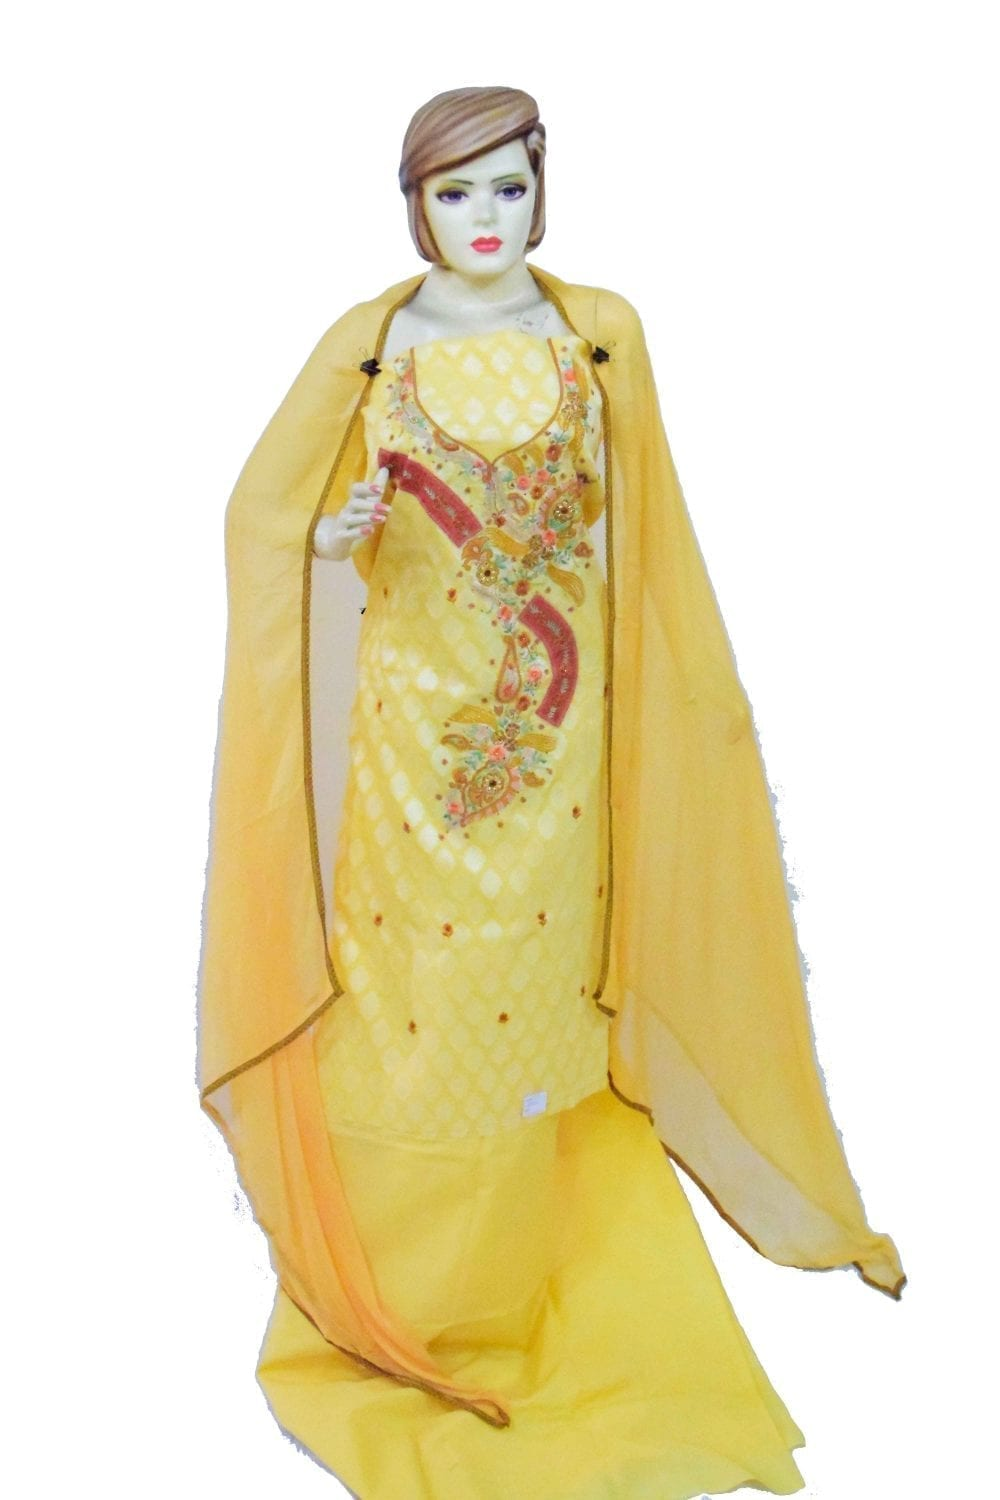 Lemon Yellow Cotton Embroidered Salwar Kameez Dupatta Suit RM095 1